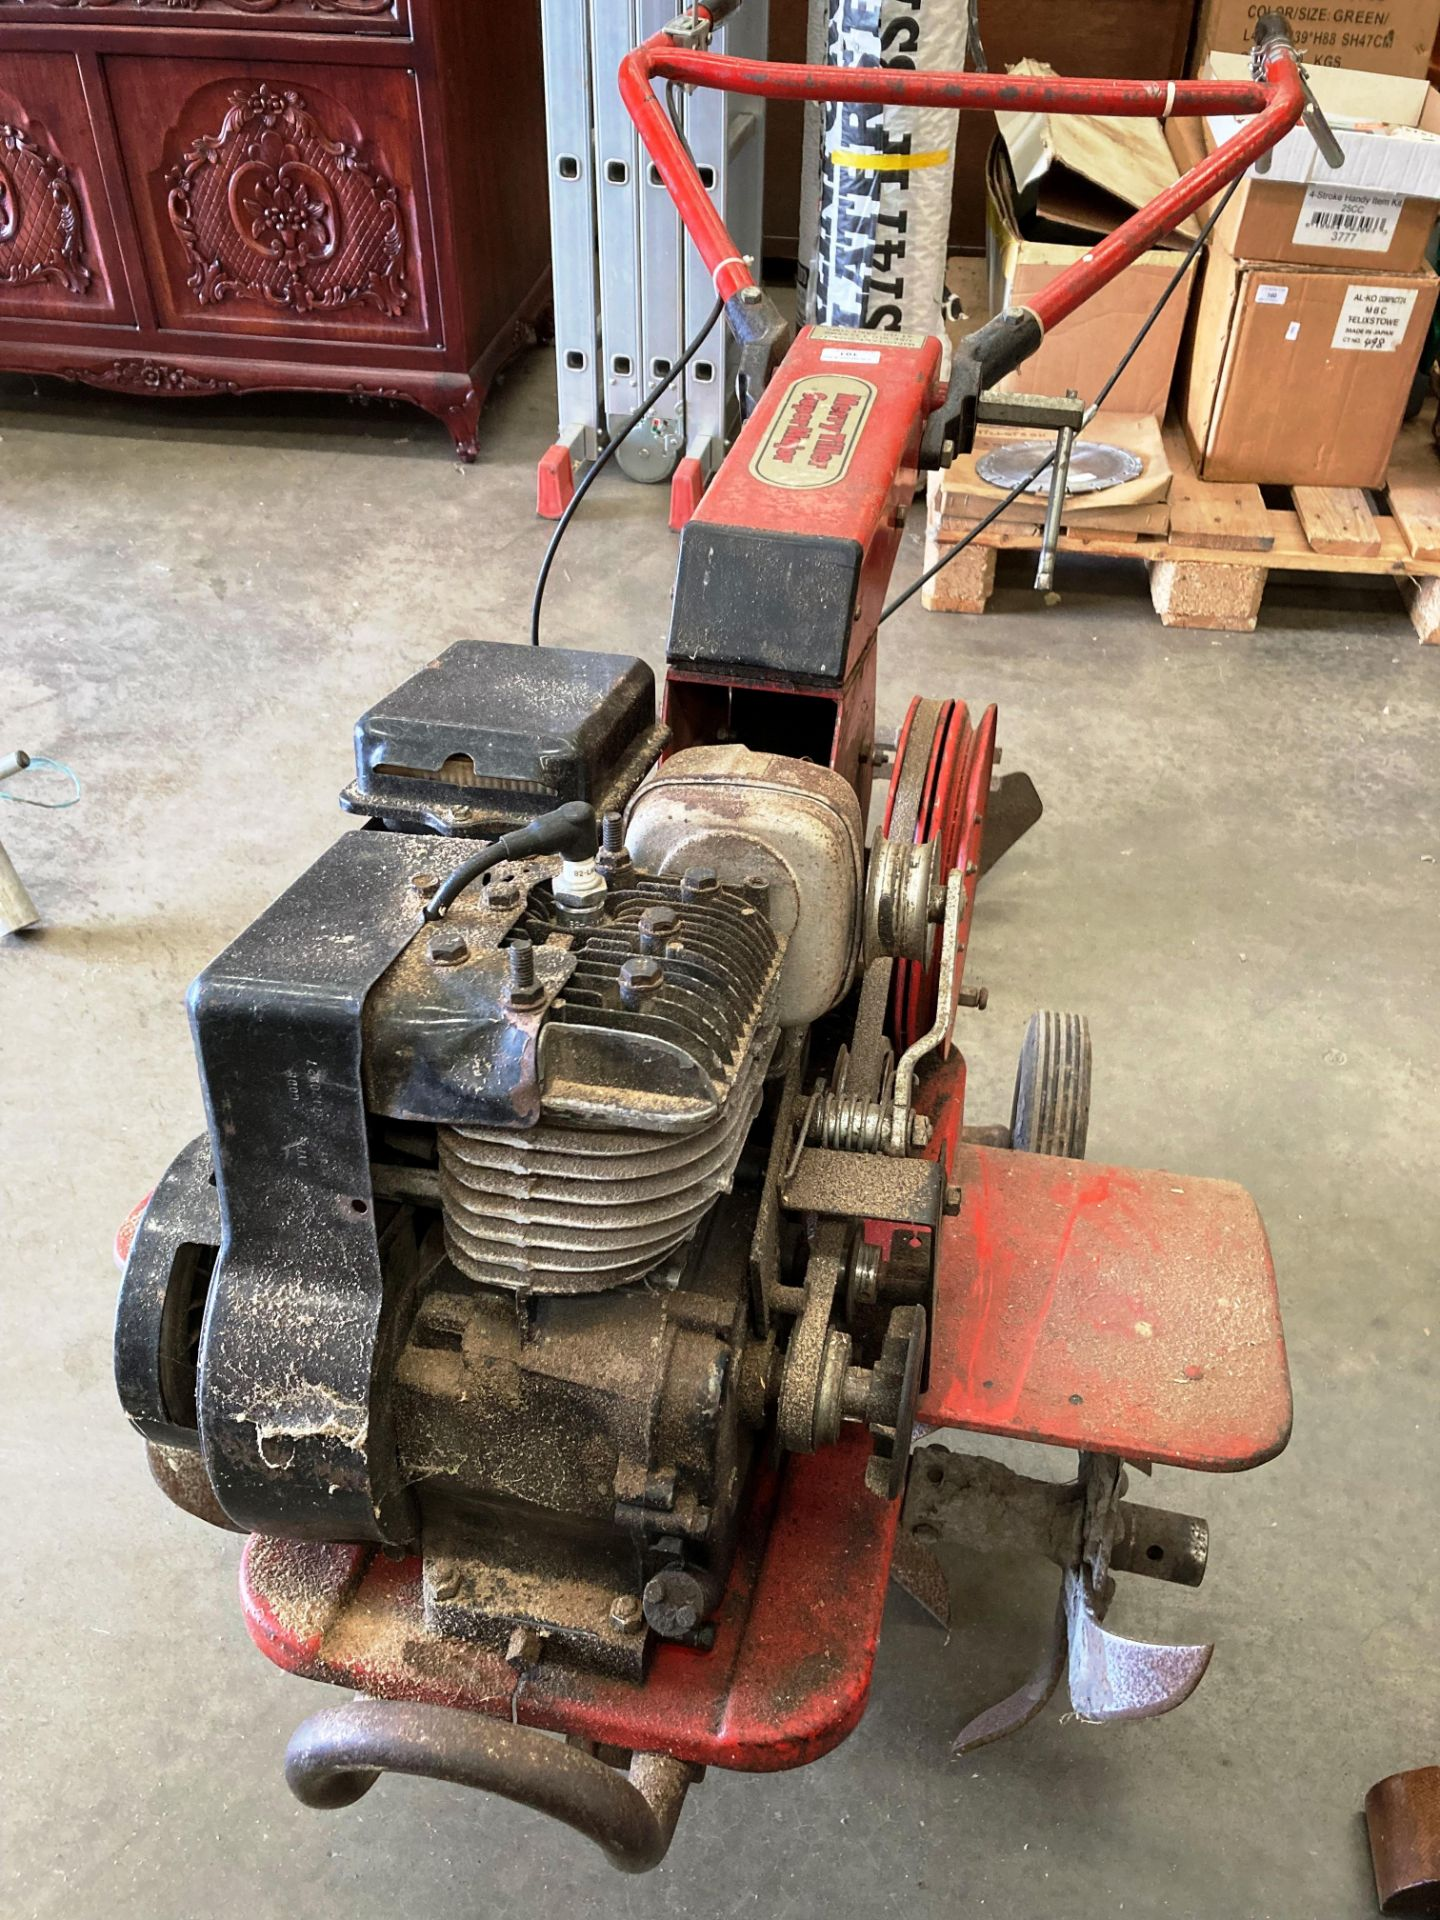 A Wolseley Merry Tiller Super Major Cultivator with Briggs & Stratton 5HP petrol engine and - Image 2 of 2